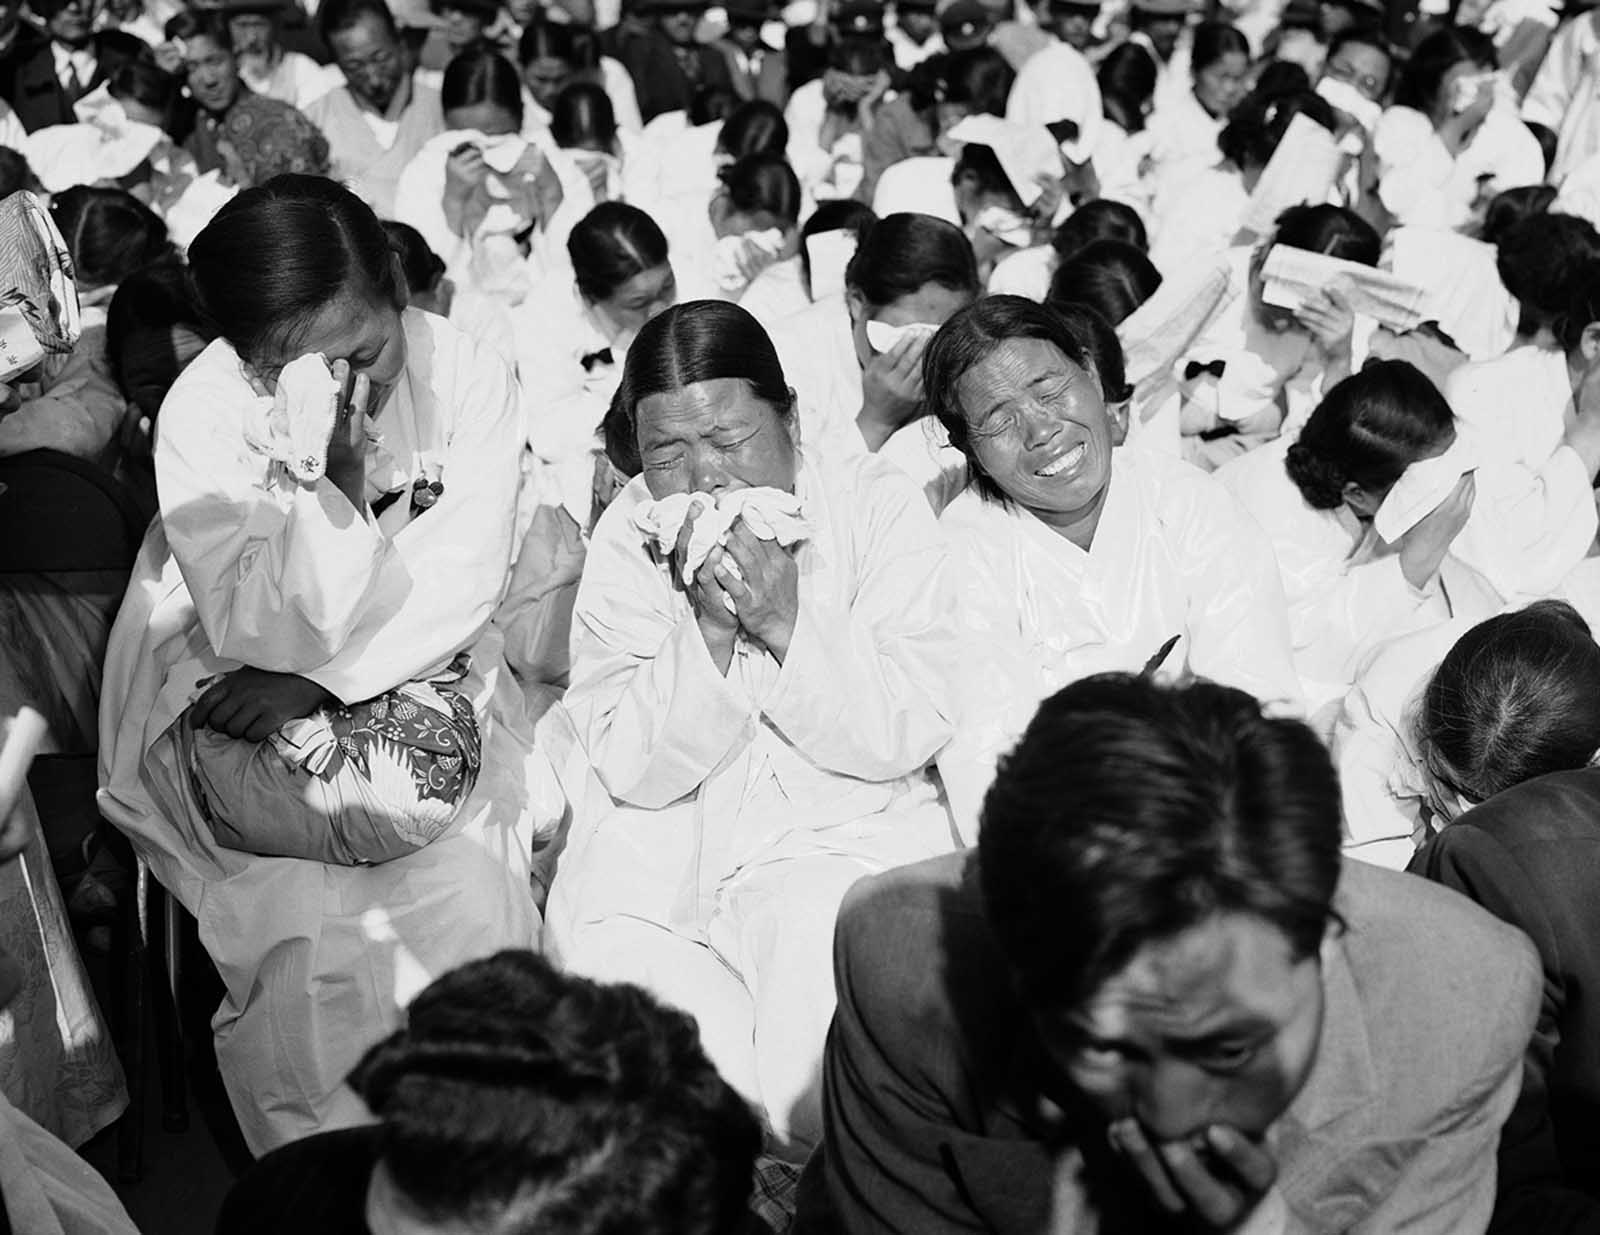 South Korean women weep as they listen to President Syngman Rhee speak at a memorial service in Seoul, October 17, 1953. The service honored the 33,964 South Koreans killed in the last year of the war.